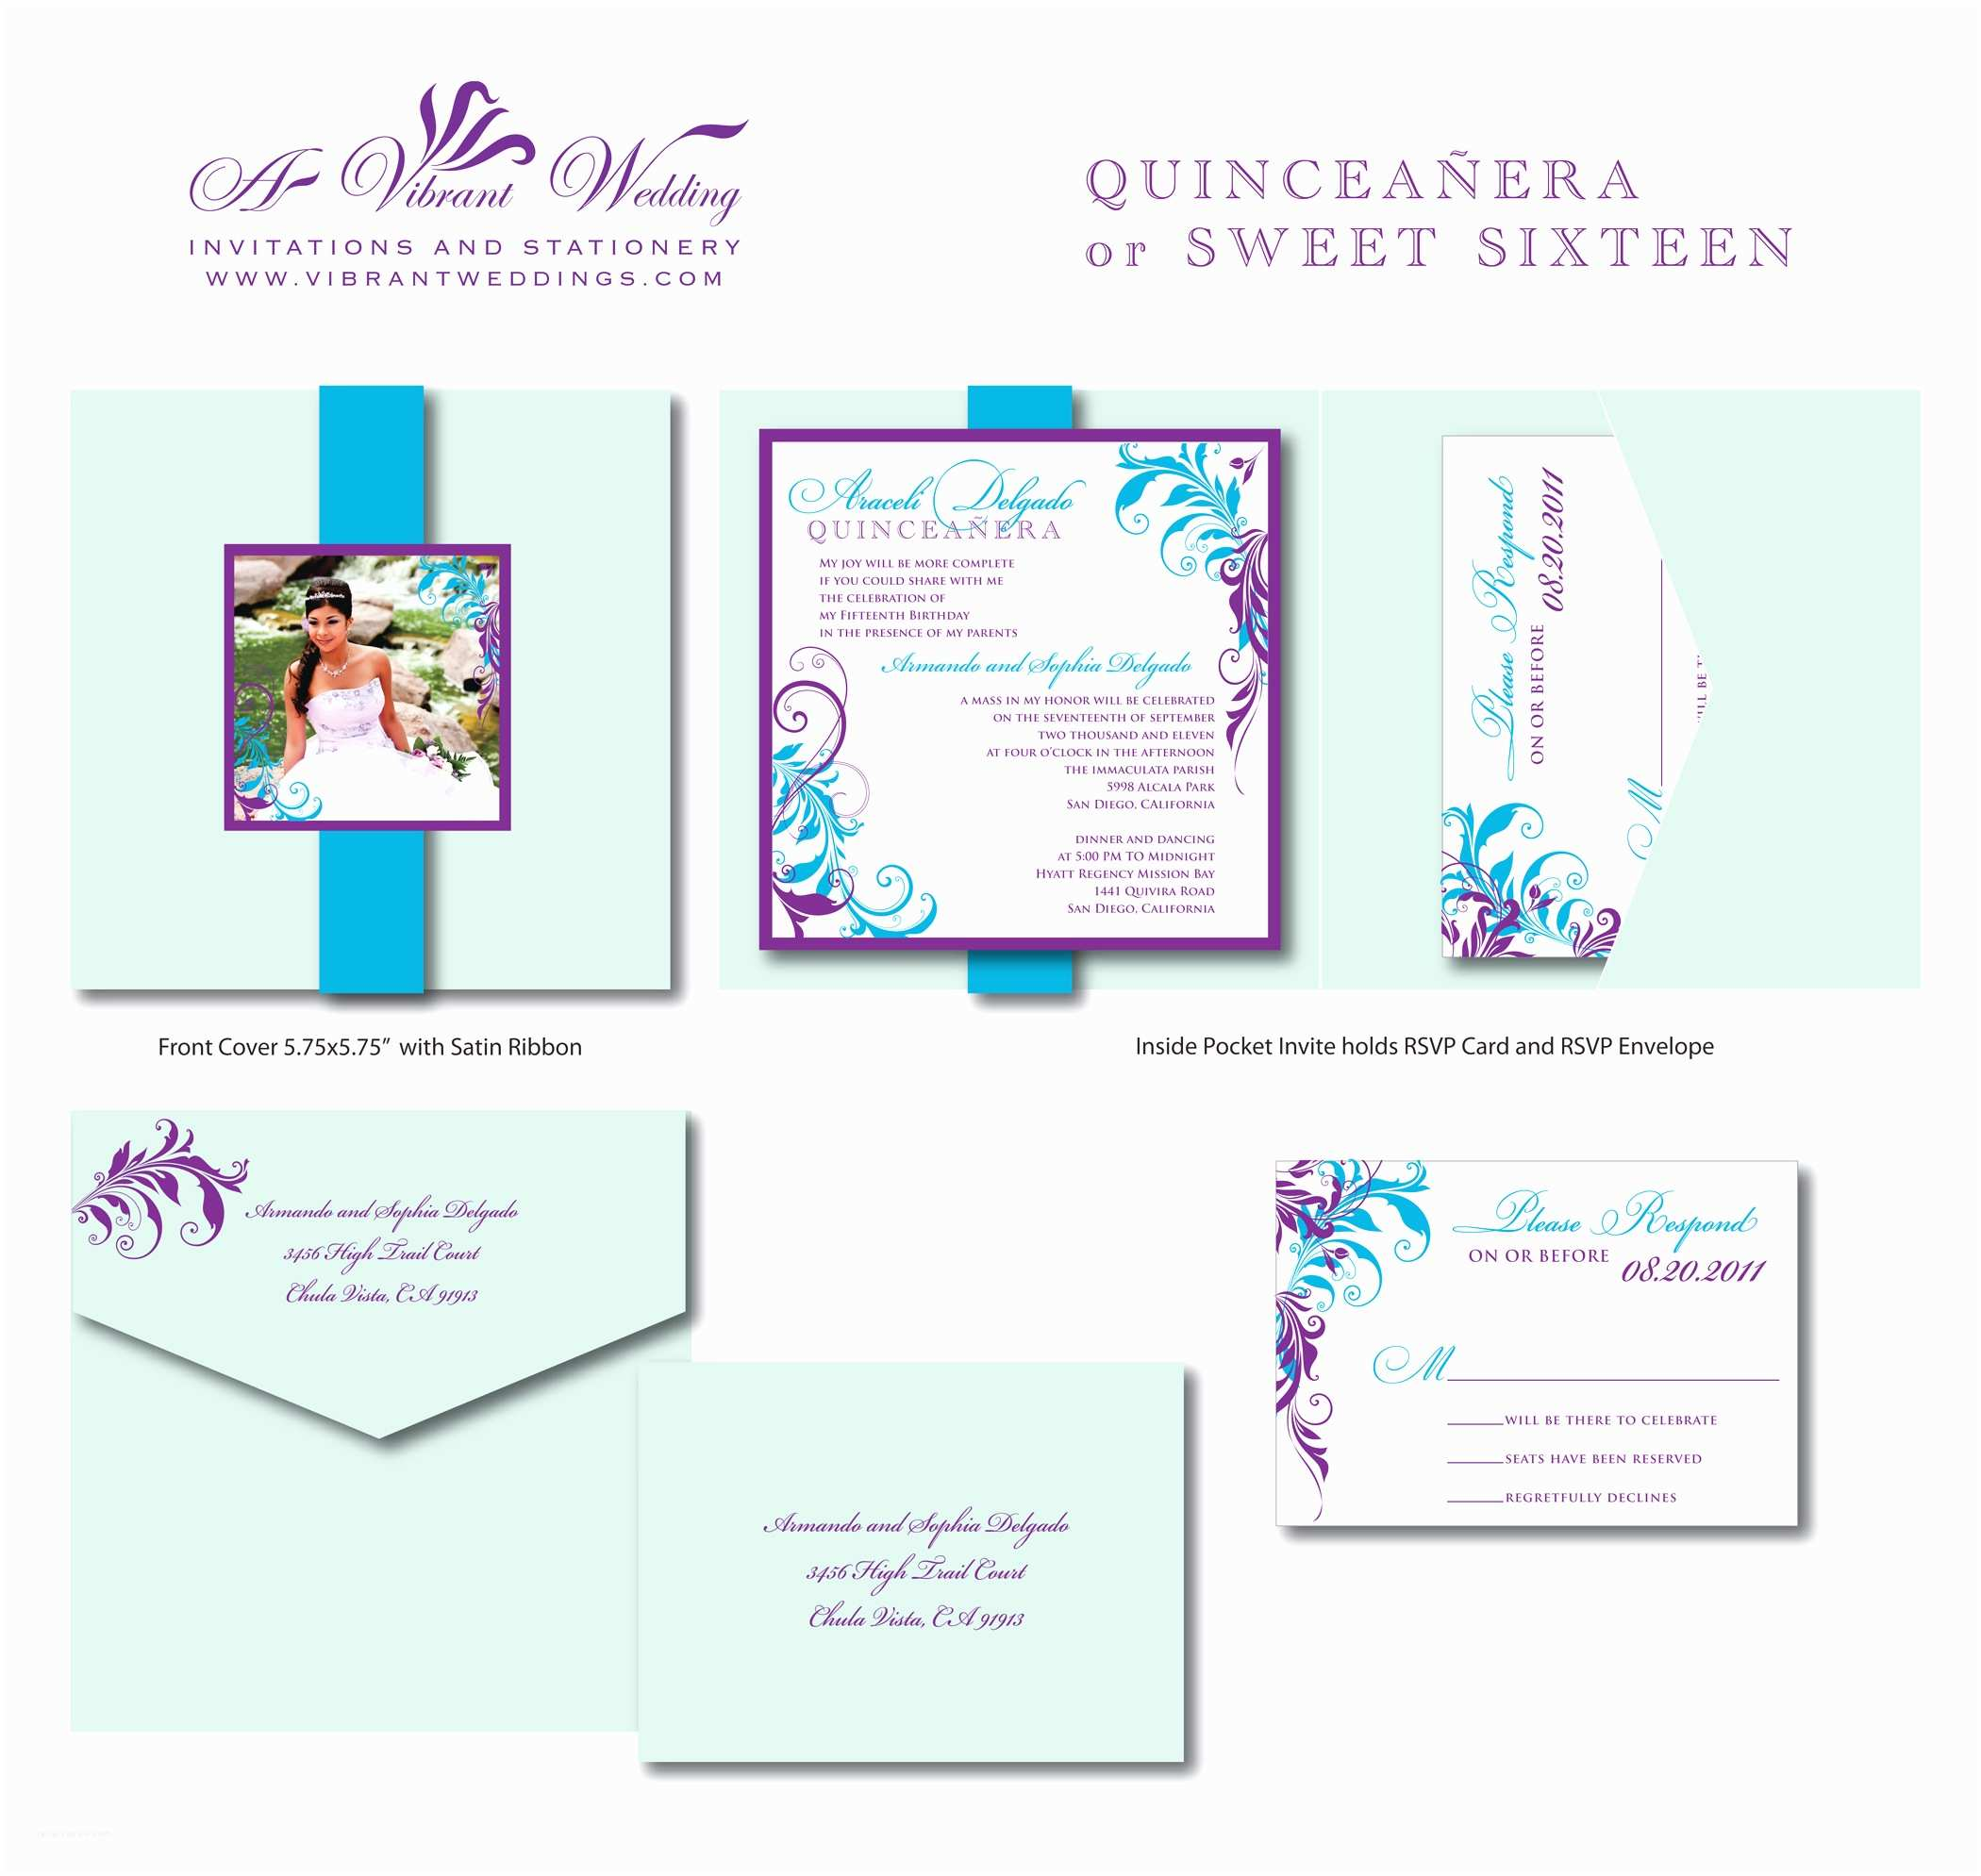 Invitations for Quinceaneras Quinceanera Invites – Page 2 – A Vibrant Wedding